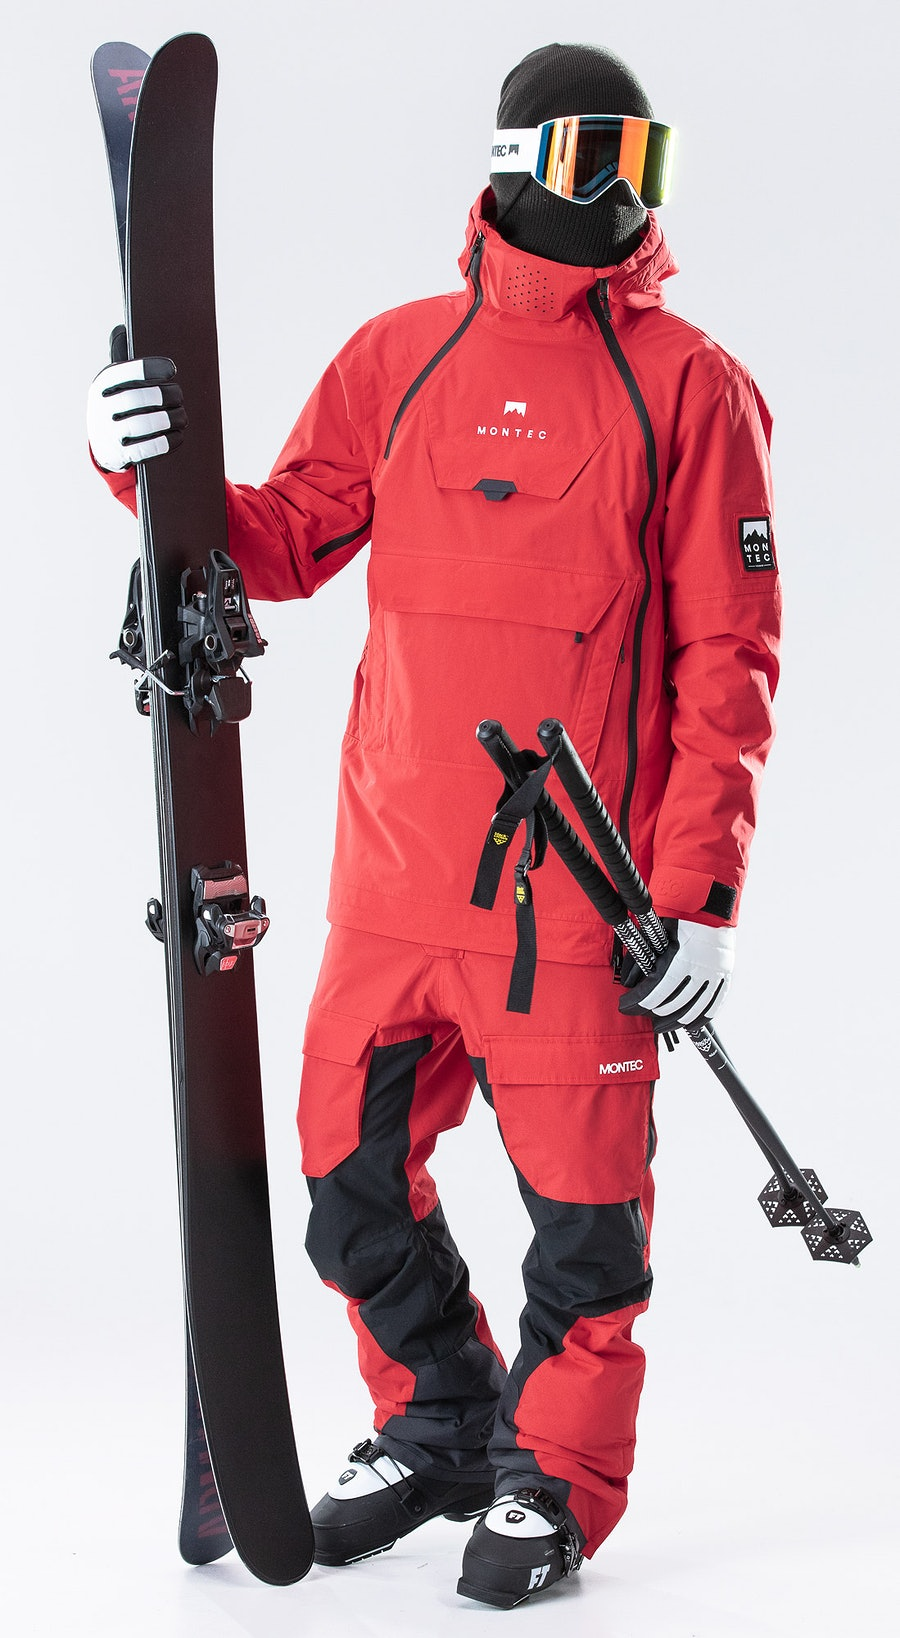 Montec Doom Red Ski Clothing Multi